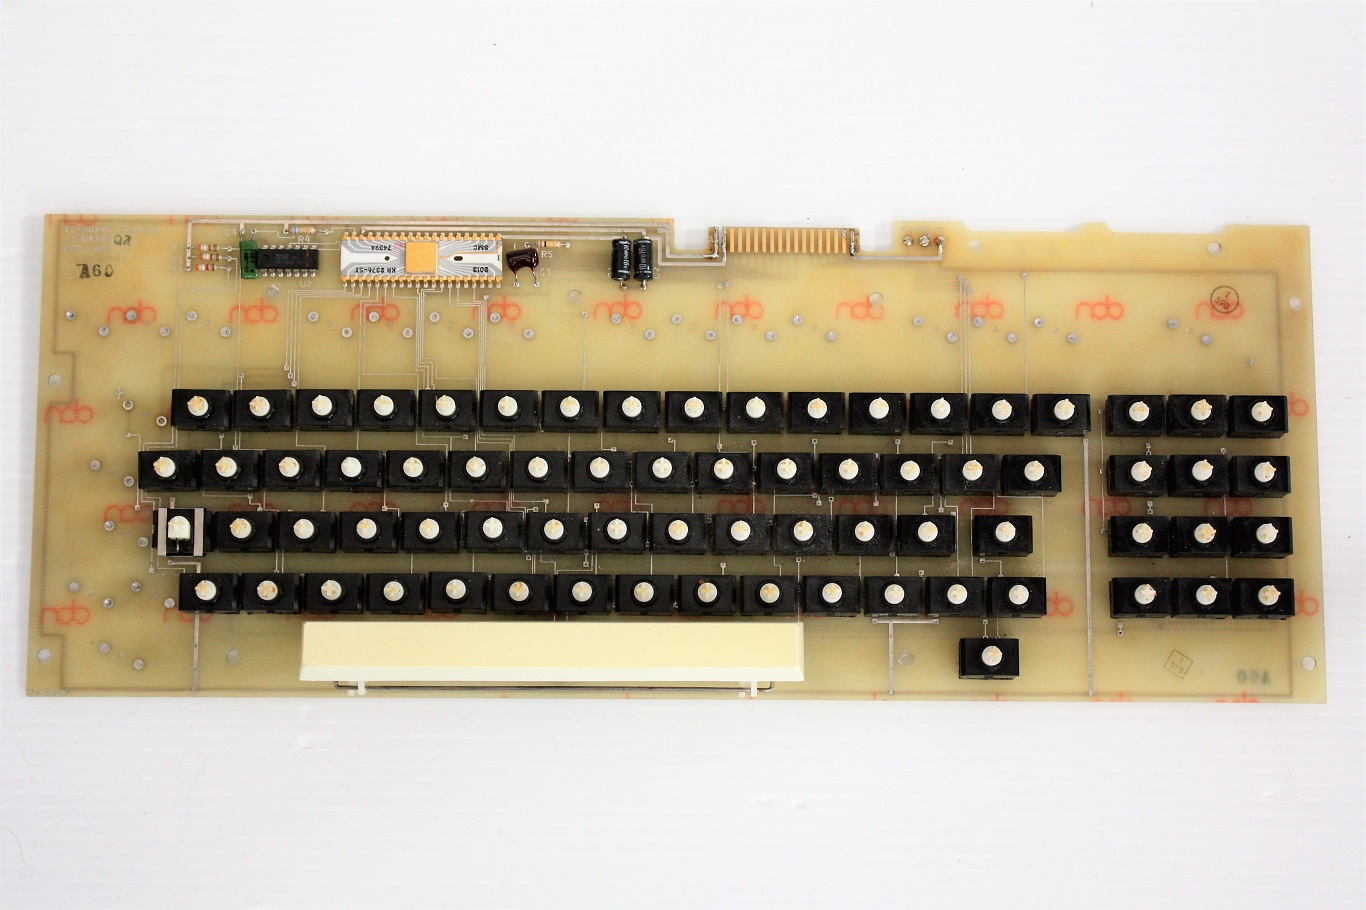 Unknown Stackpole - key caps removed